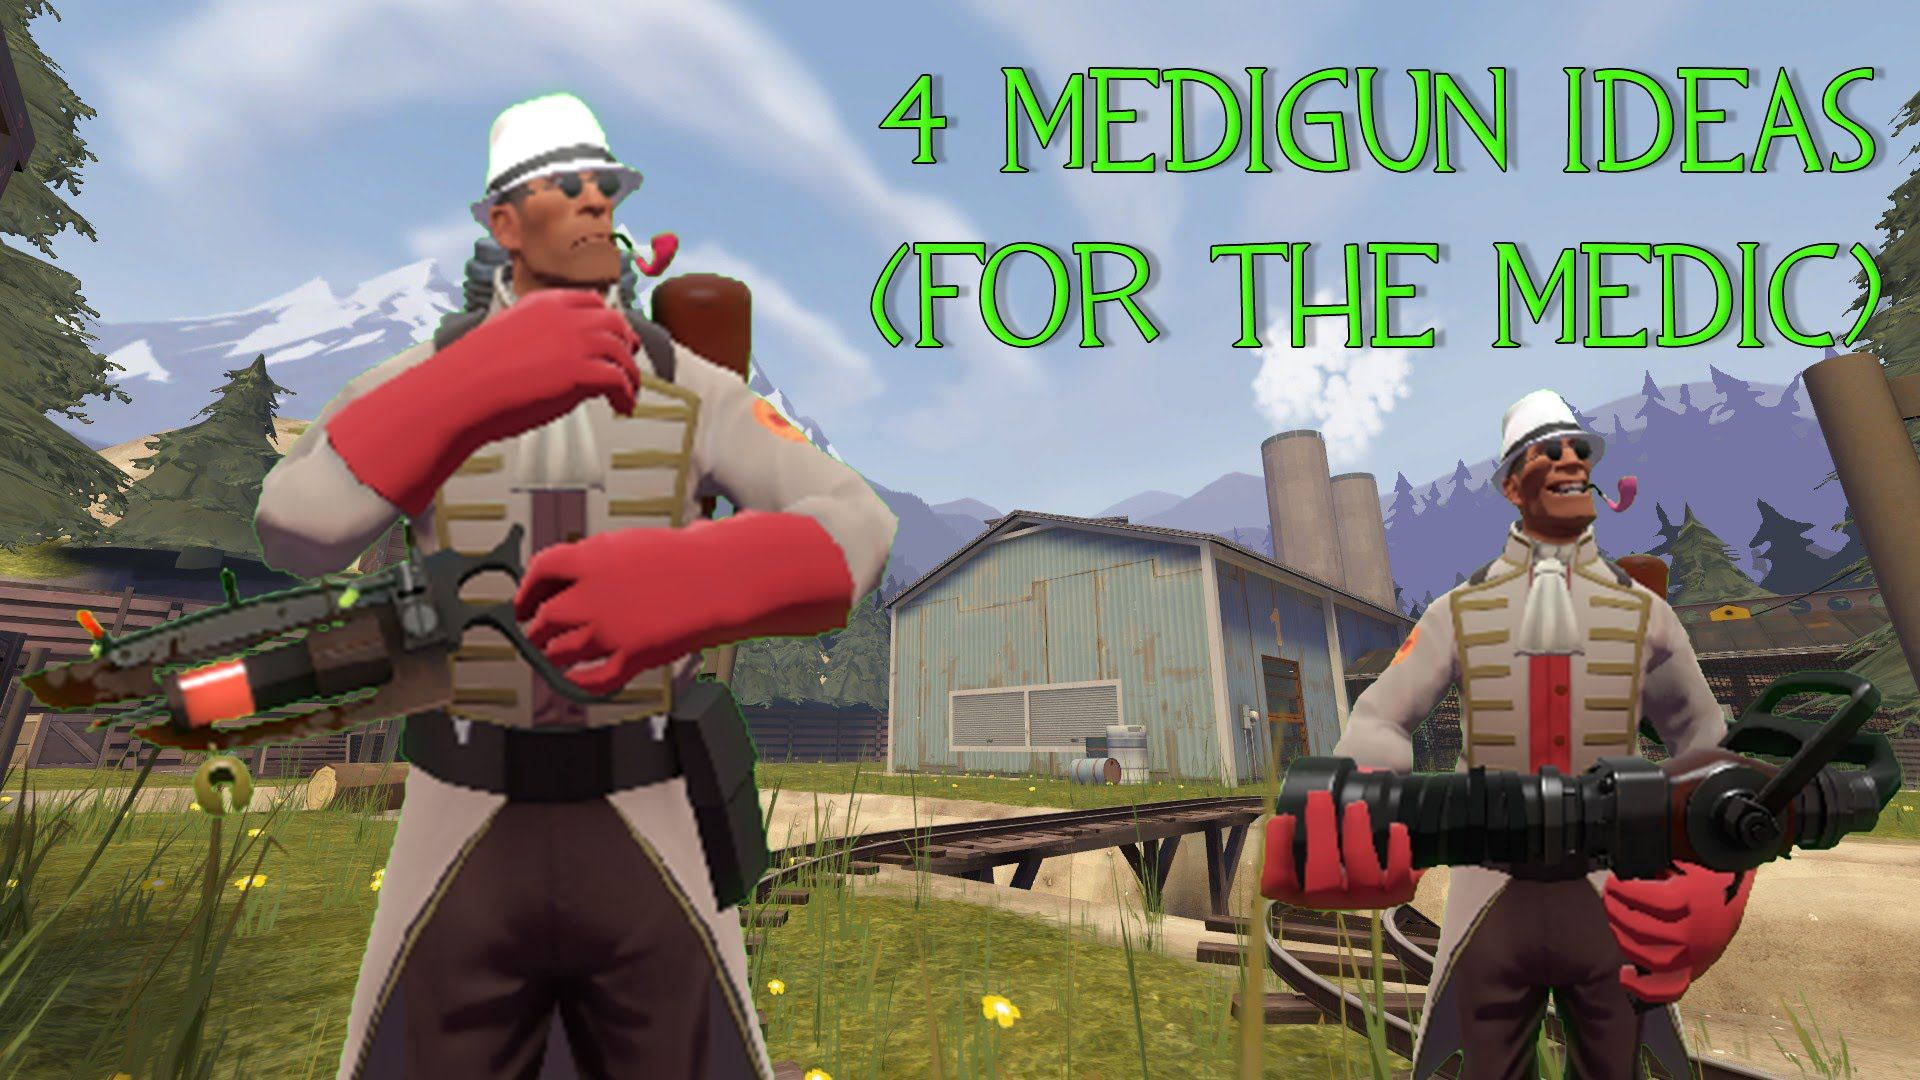 I had some Medi Gun ideas. Wonder what people think? #games #teamfortress2 #steam #tf2 #SteamNewRelease #gaming #Valve